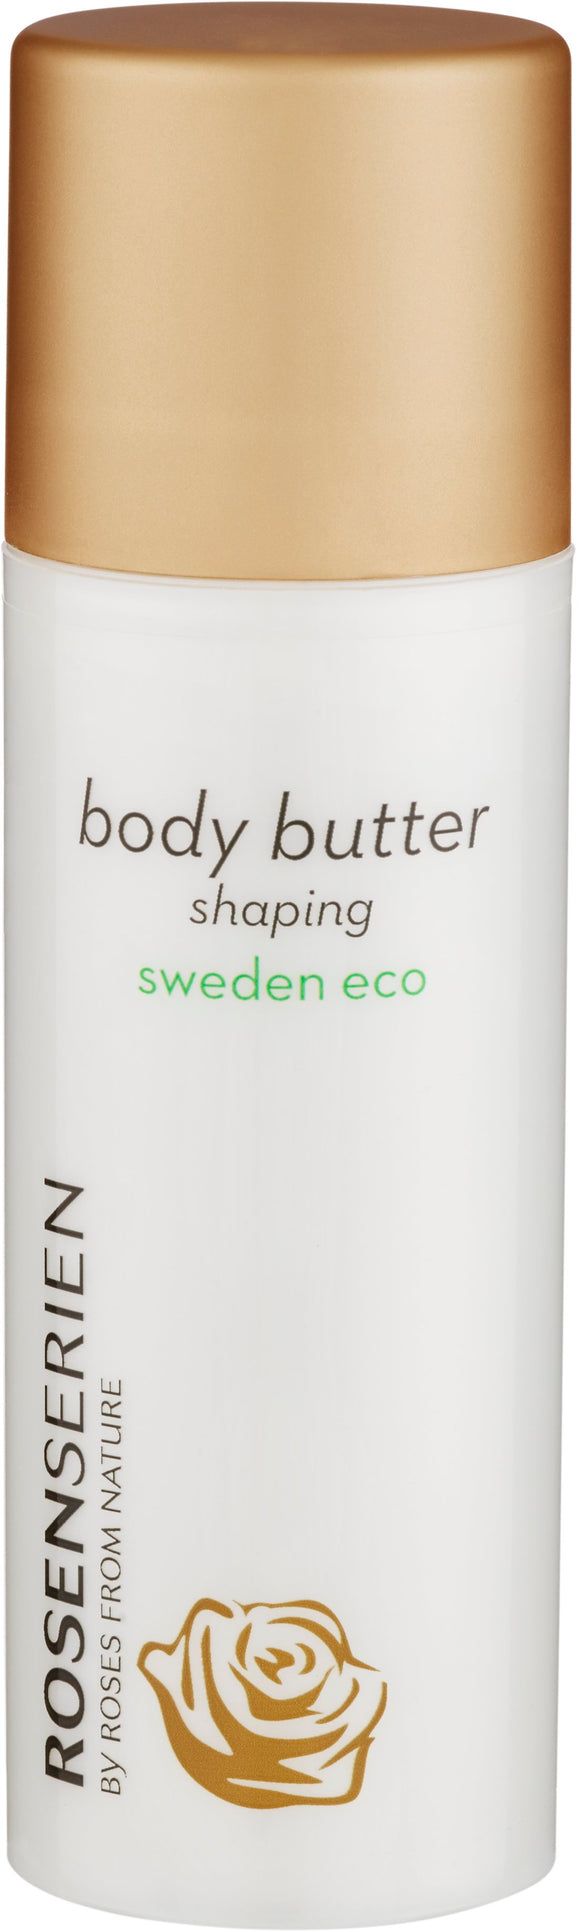 Body butter shaping - Rosenserien